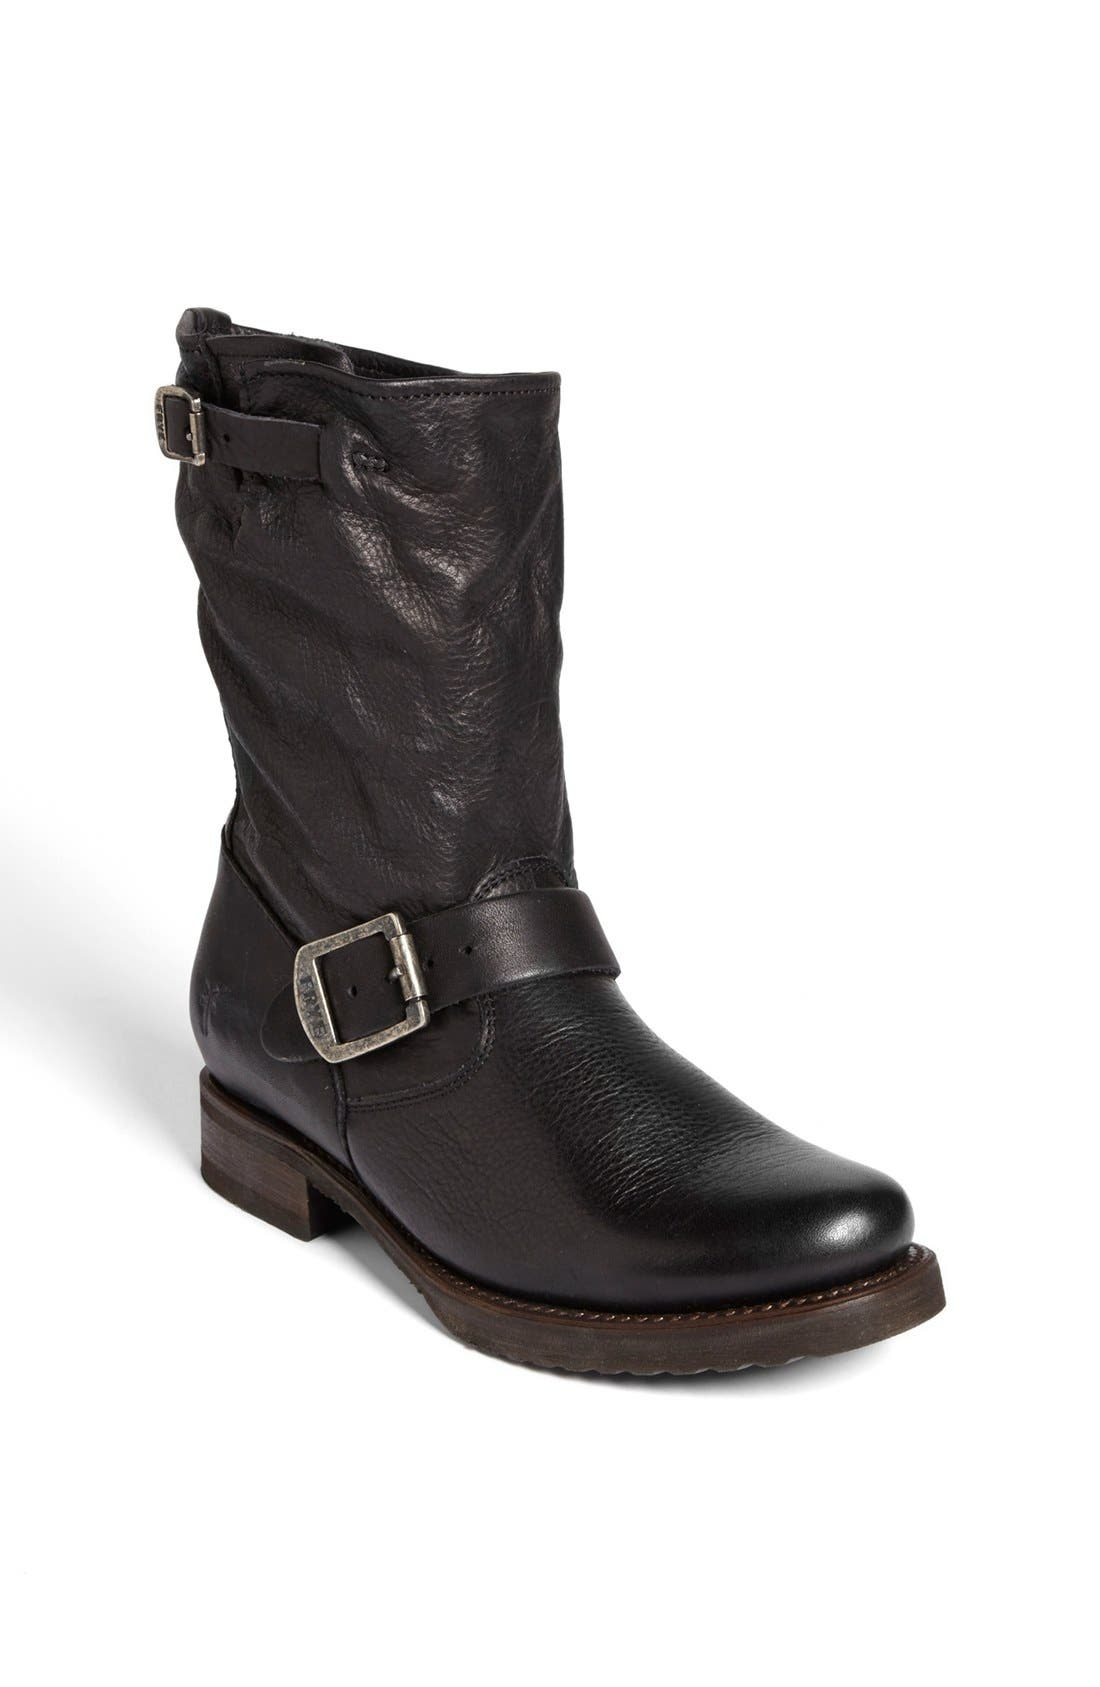 Alternate Image 1 Selected - Frye 'Veronica Short' Slouchy Boot (Women)